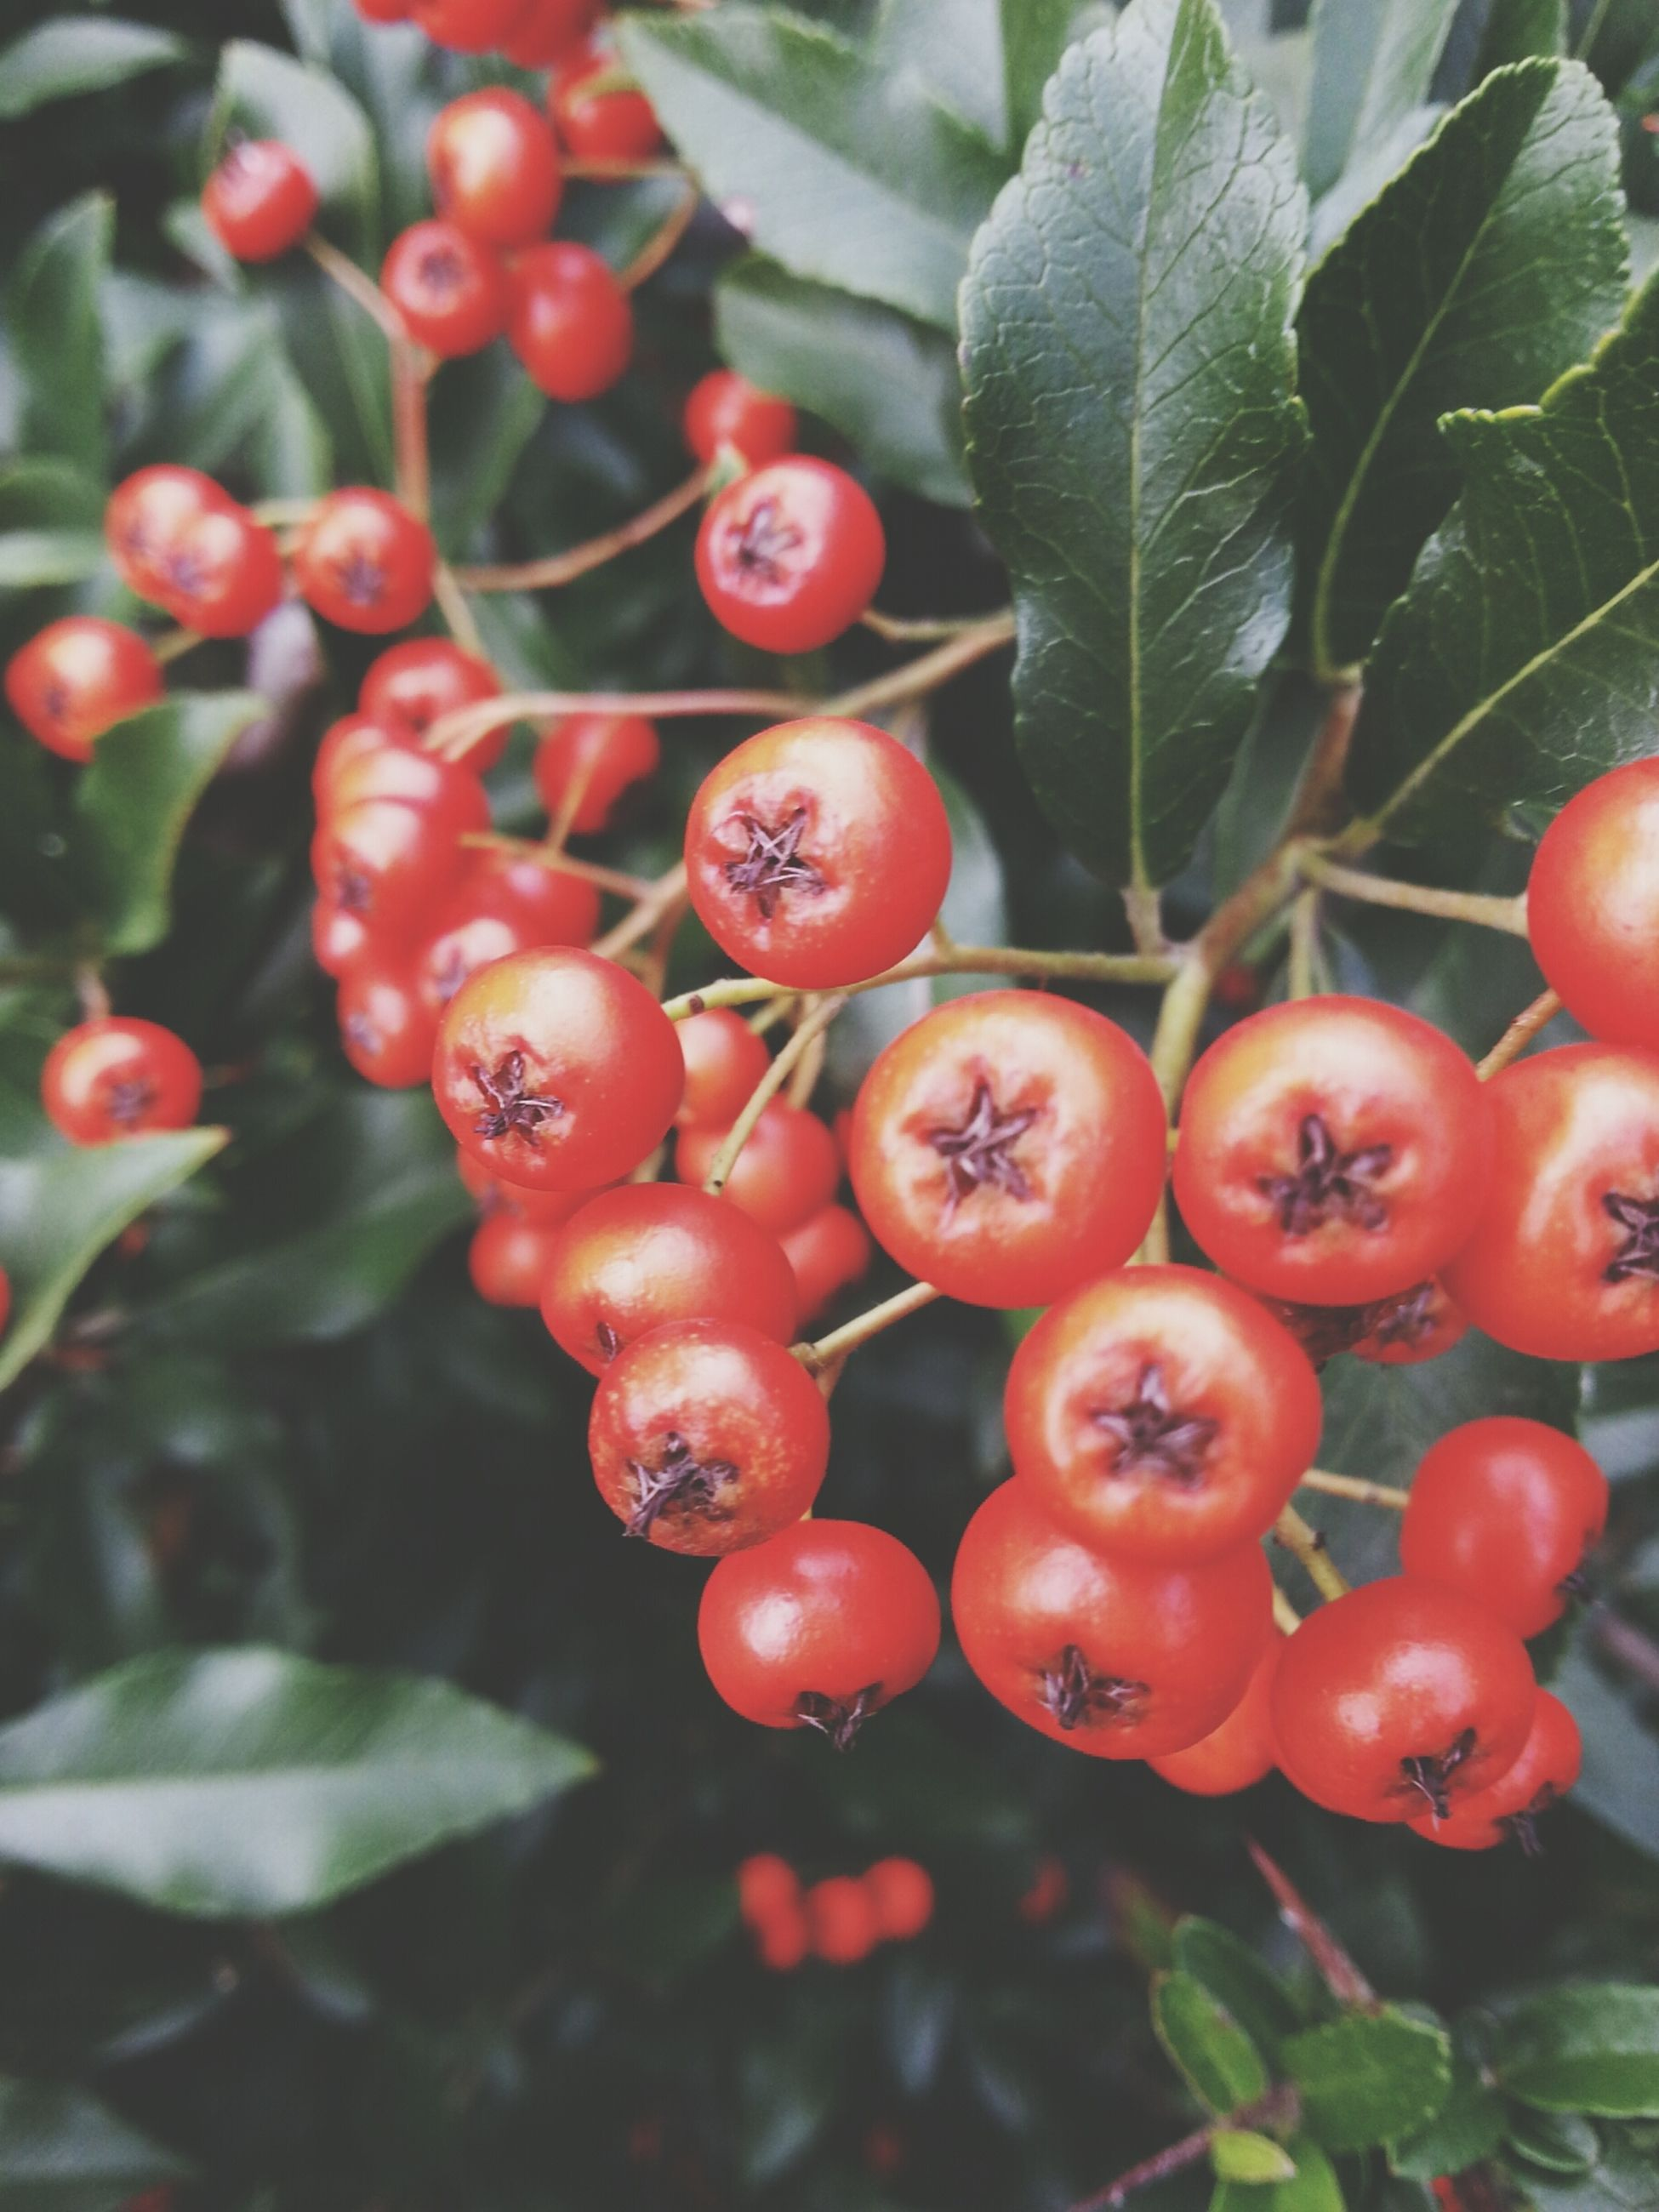 red, food and drink, fruit, freshness, food, healthy eating, growth, leaf, tree, close-up, hanging, ripe, branch, focus on foreground, nature, berry fruit, plant, cherry, green color, day